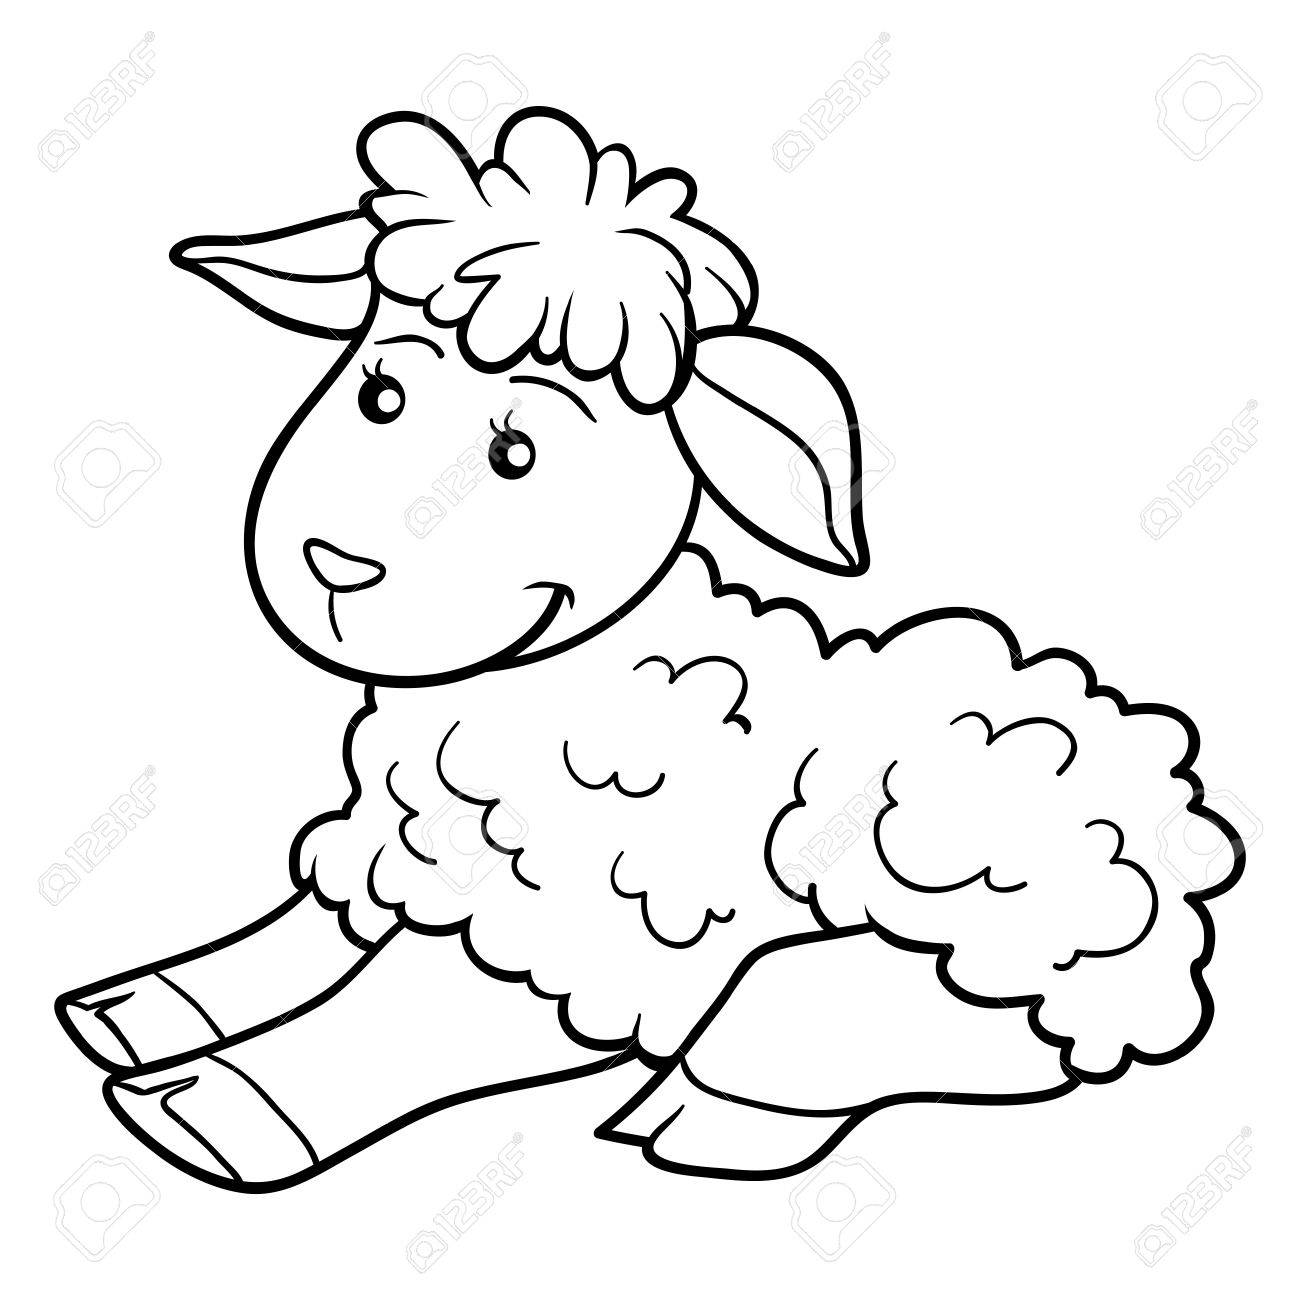 Sheep Coloring Book - Worksheet & Coloring Pages